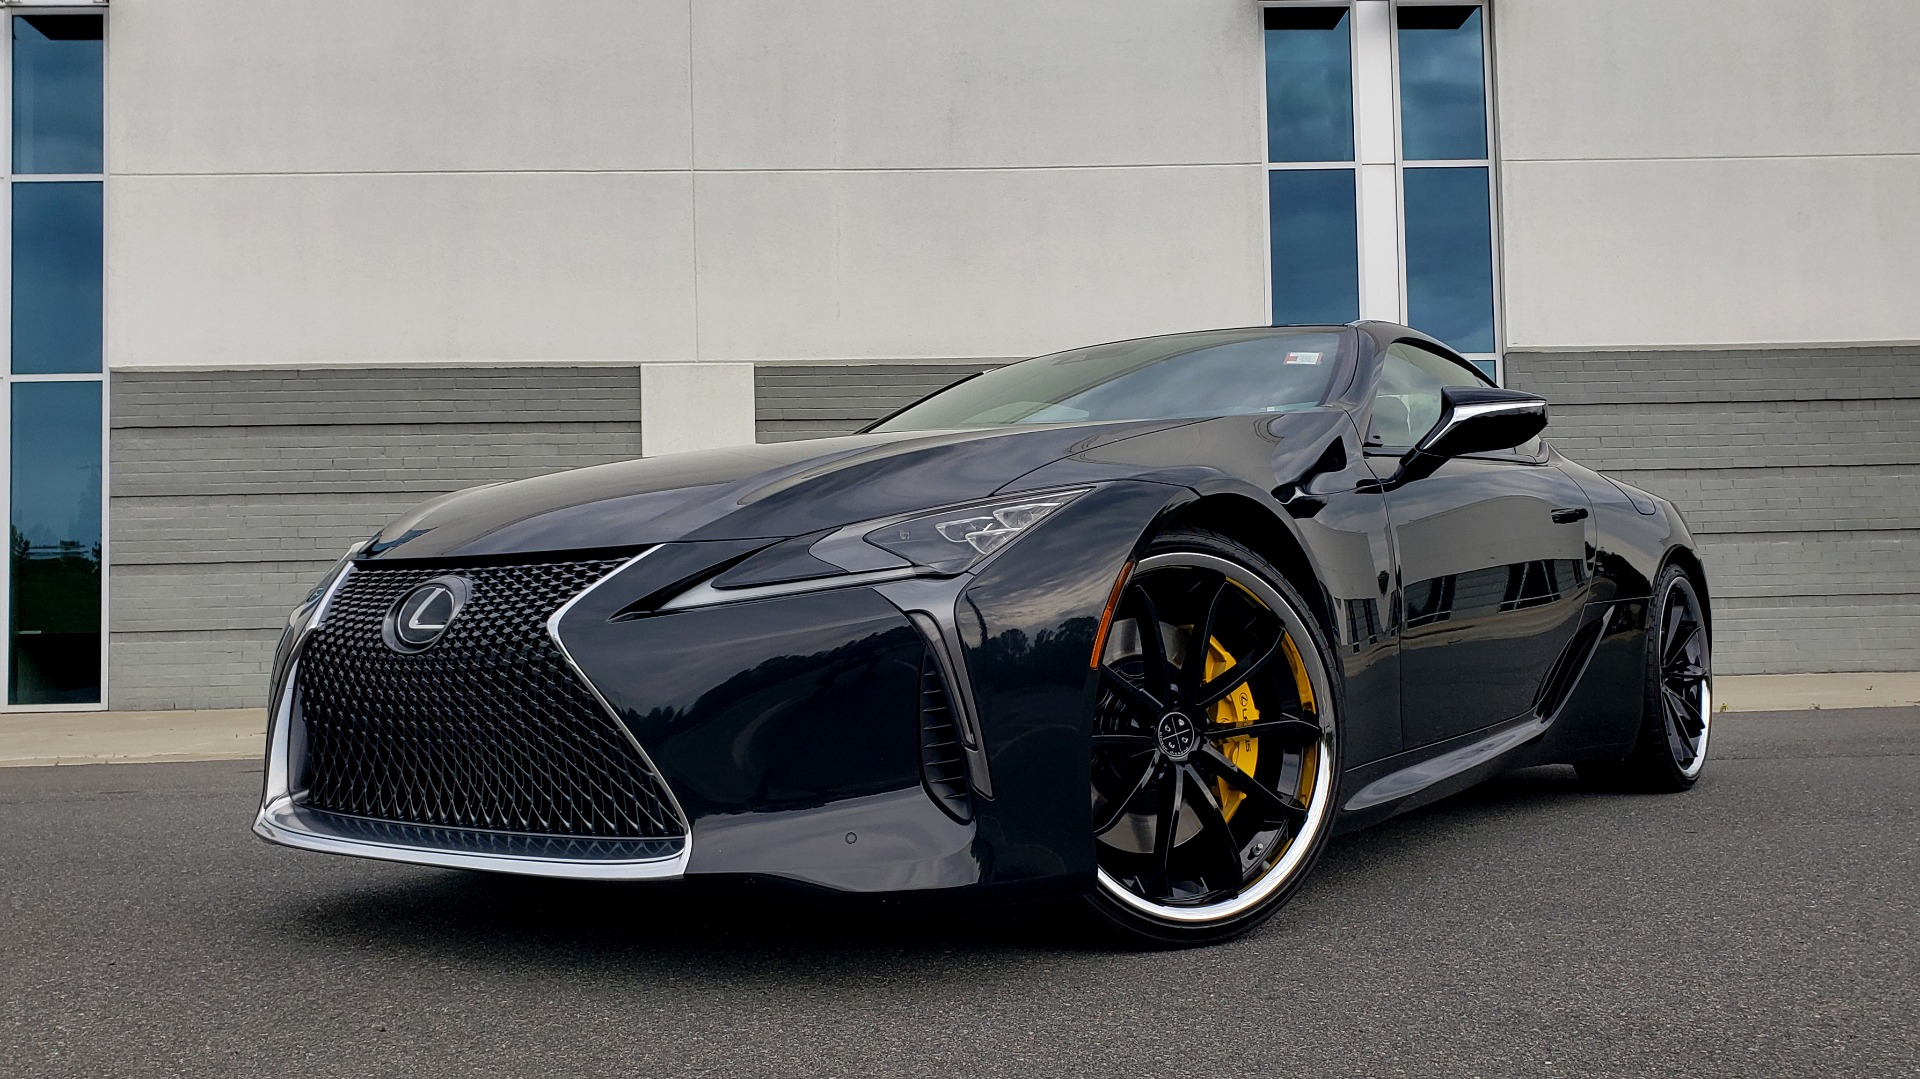 Used 2018 Lexus LC 500 COUPE / 5.0L V8 (471HP) / 10-SPD AUTO / HUD / SUNROOF / REARVIEW for sale Sold at Formula Imports in Charlotte NC 28227 3